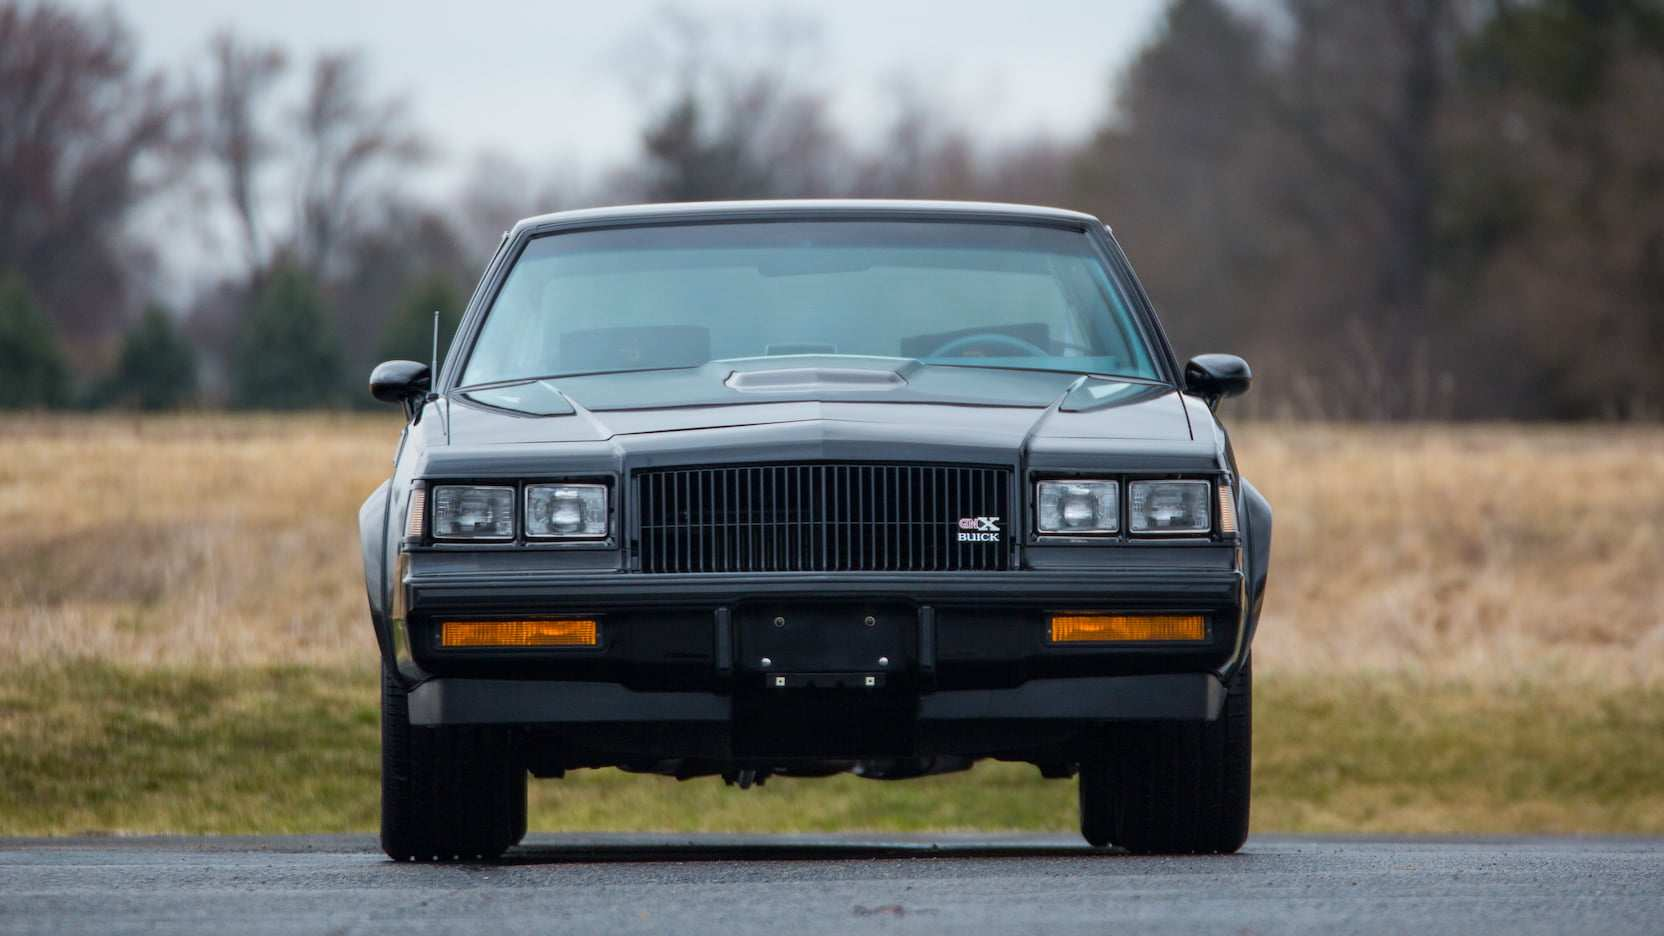 42 All New Pictures Of The New Buick Grand National Review for Pictures Of The New Buick Grand National